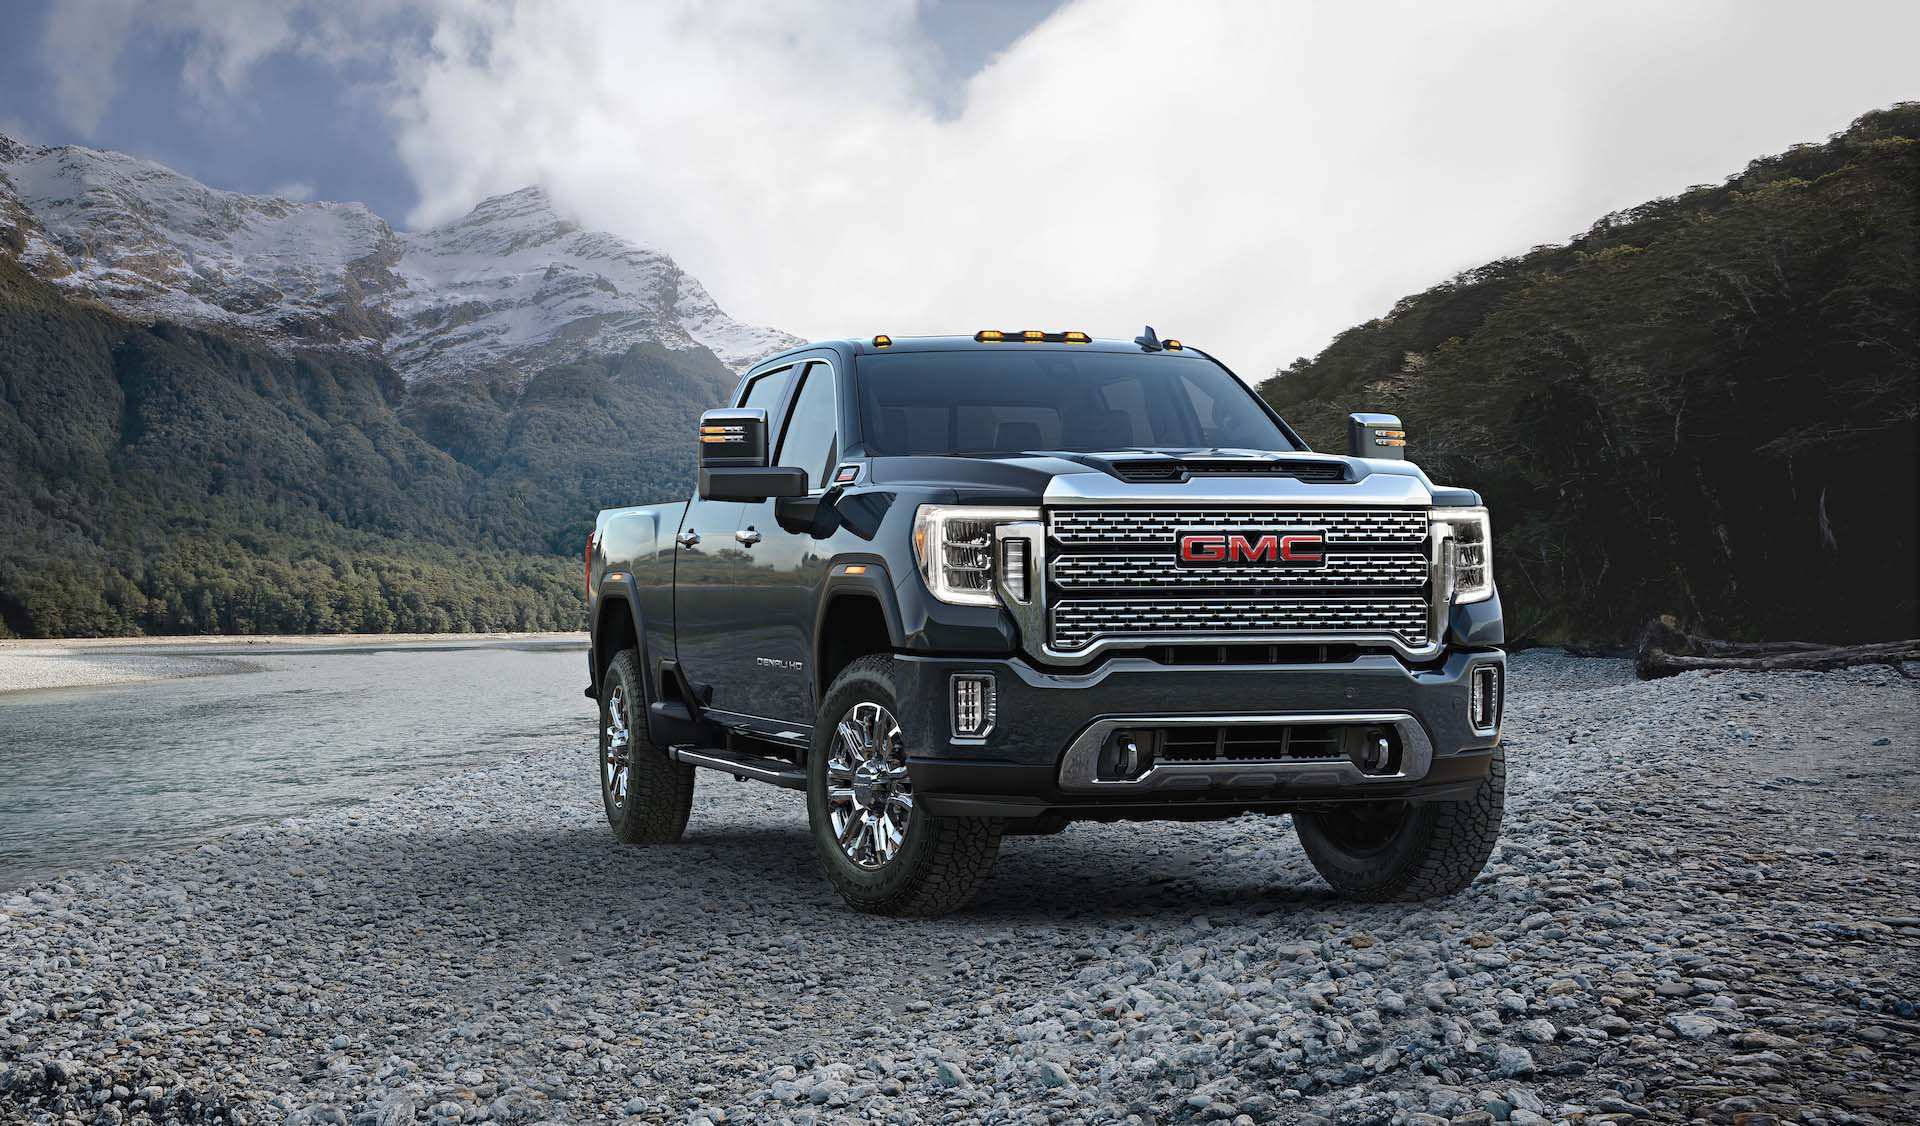 76 Best Review 2020 Gmc 2500 Price Photos by 2020 Gmc 2500 Price